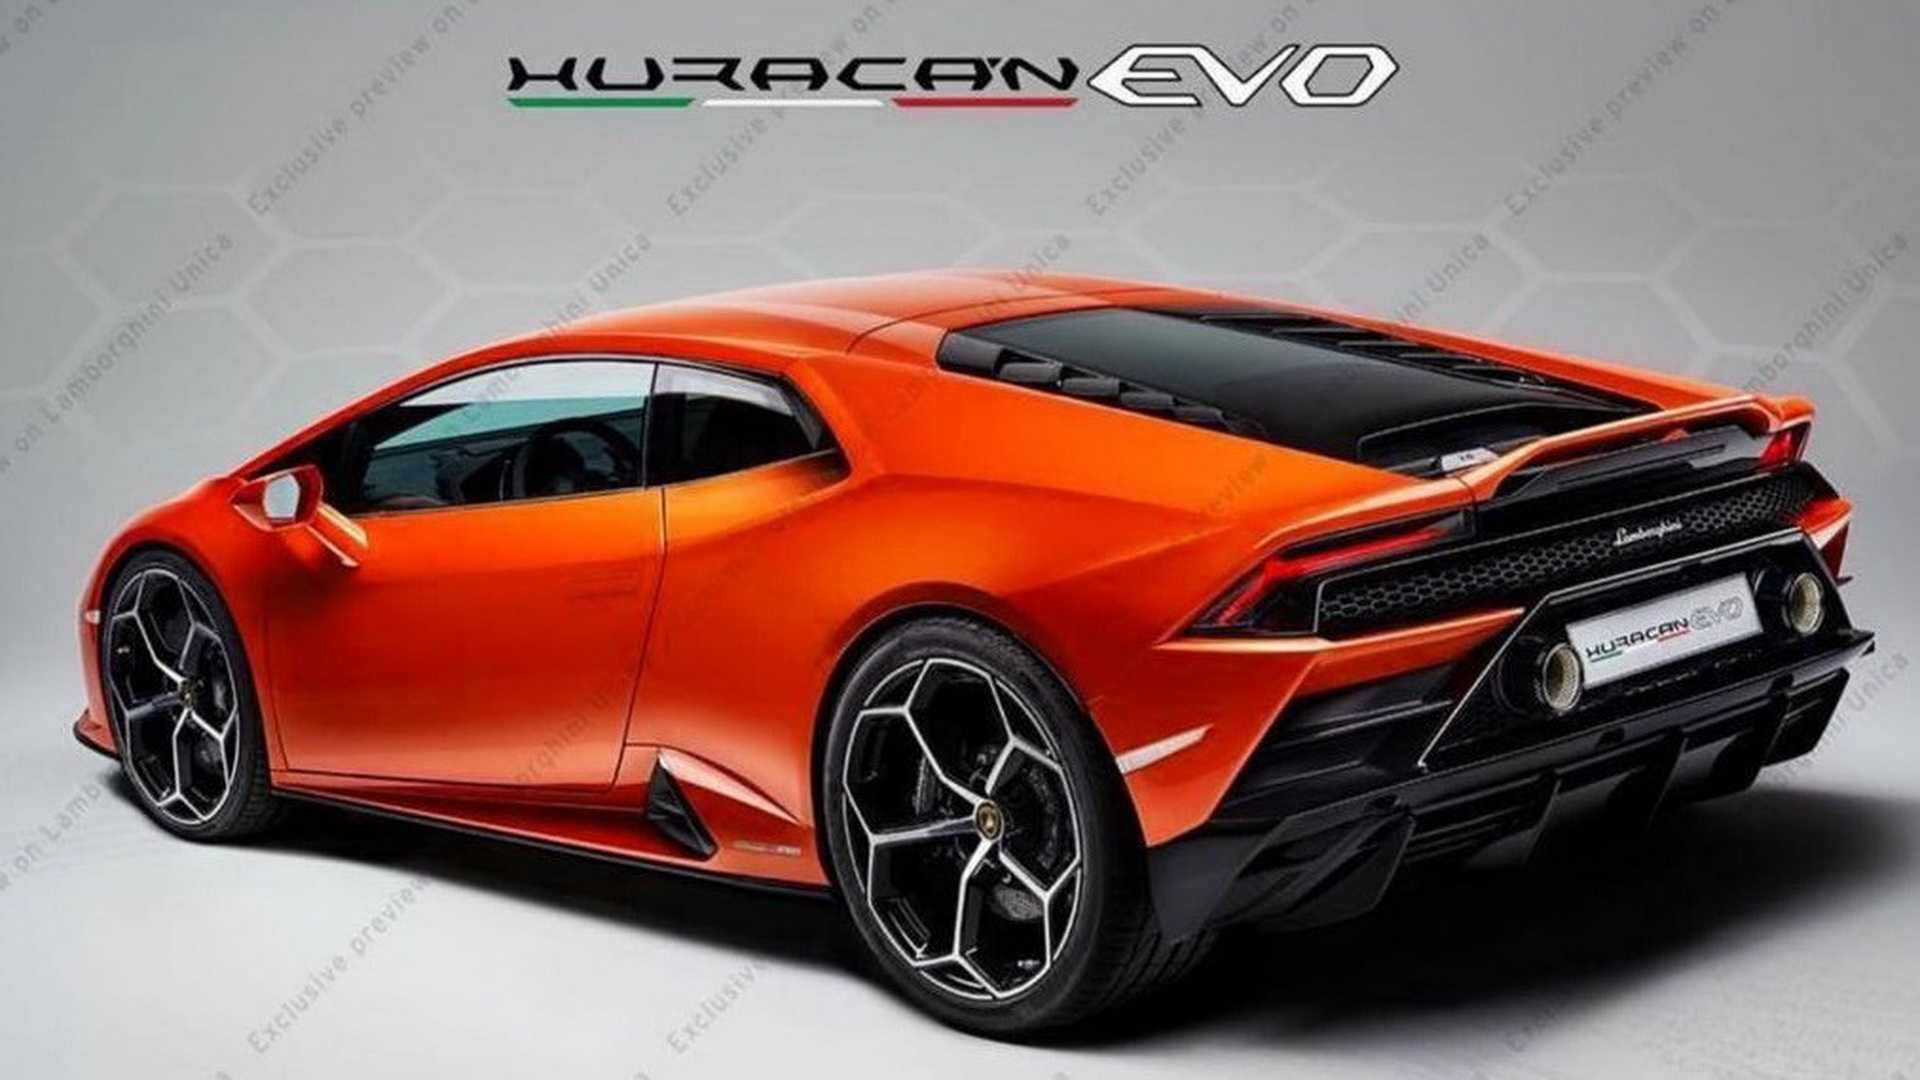 2020 Lamborghini Huracan Evo First Official Image Released 1920x1080